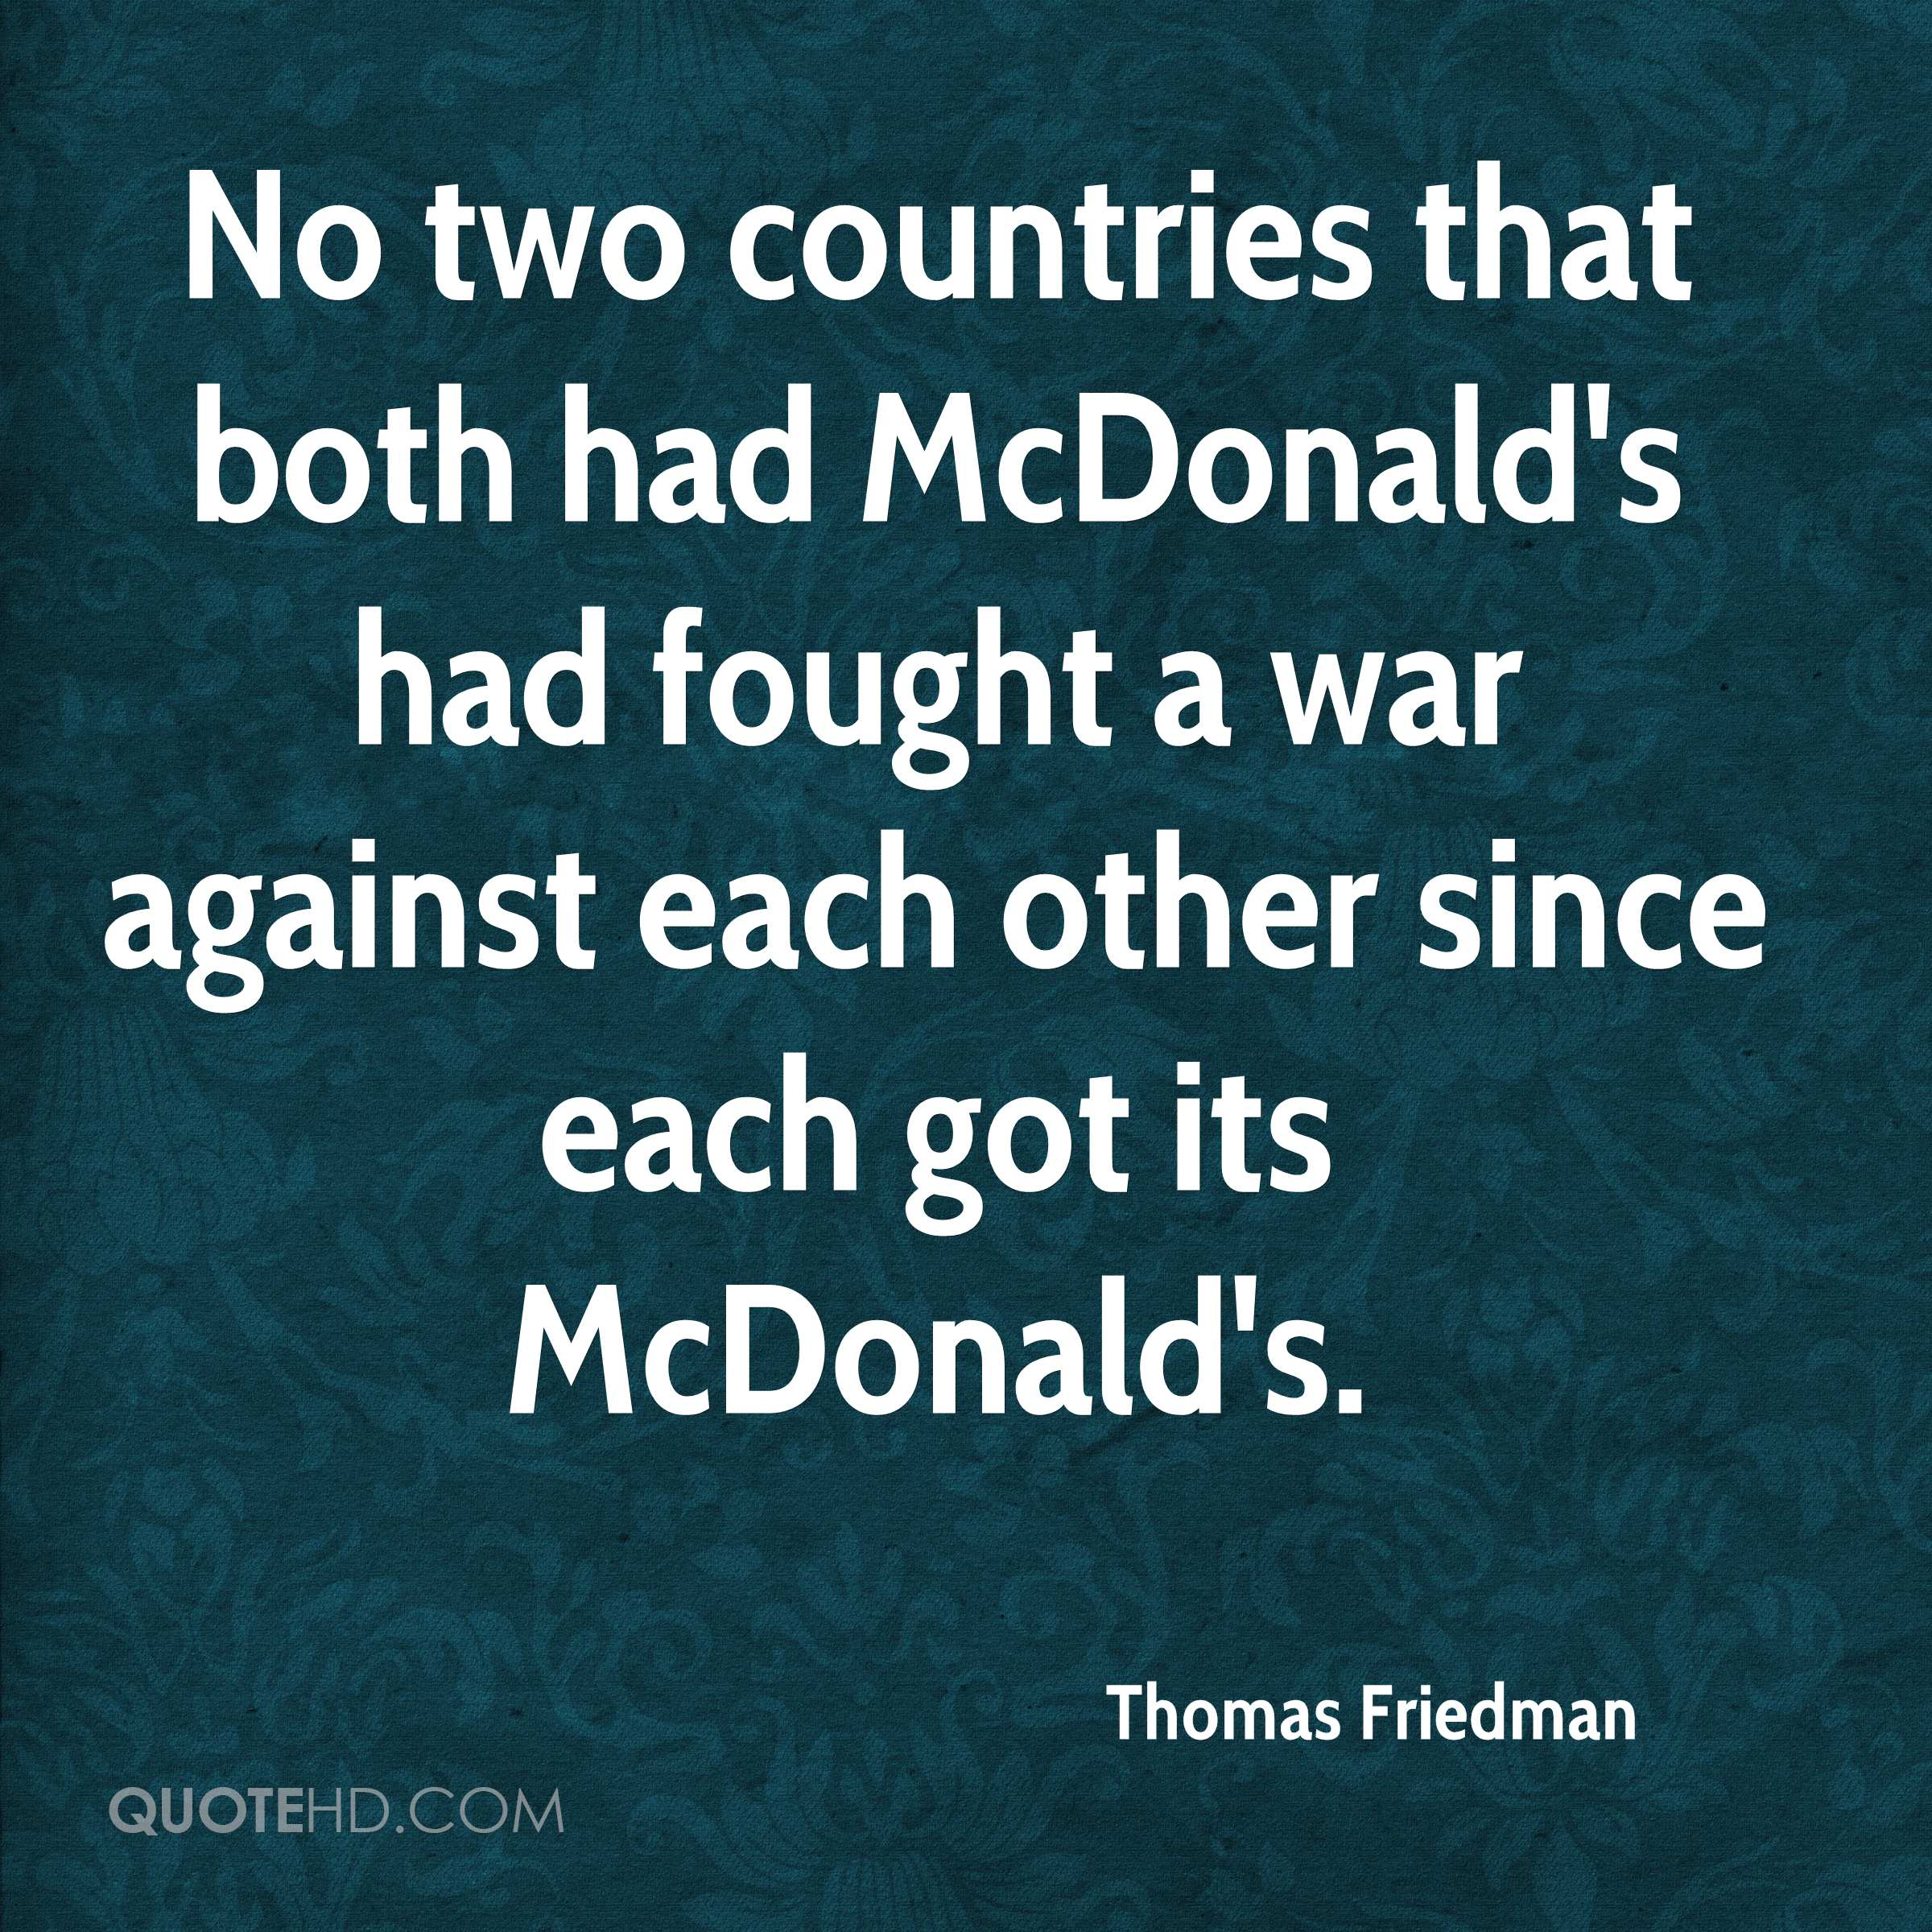 No two countries that both had McDonald's had fought a war against each other since each got its McDonald's.